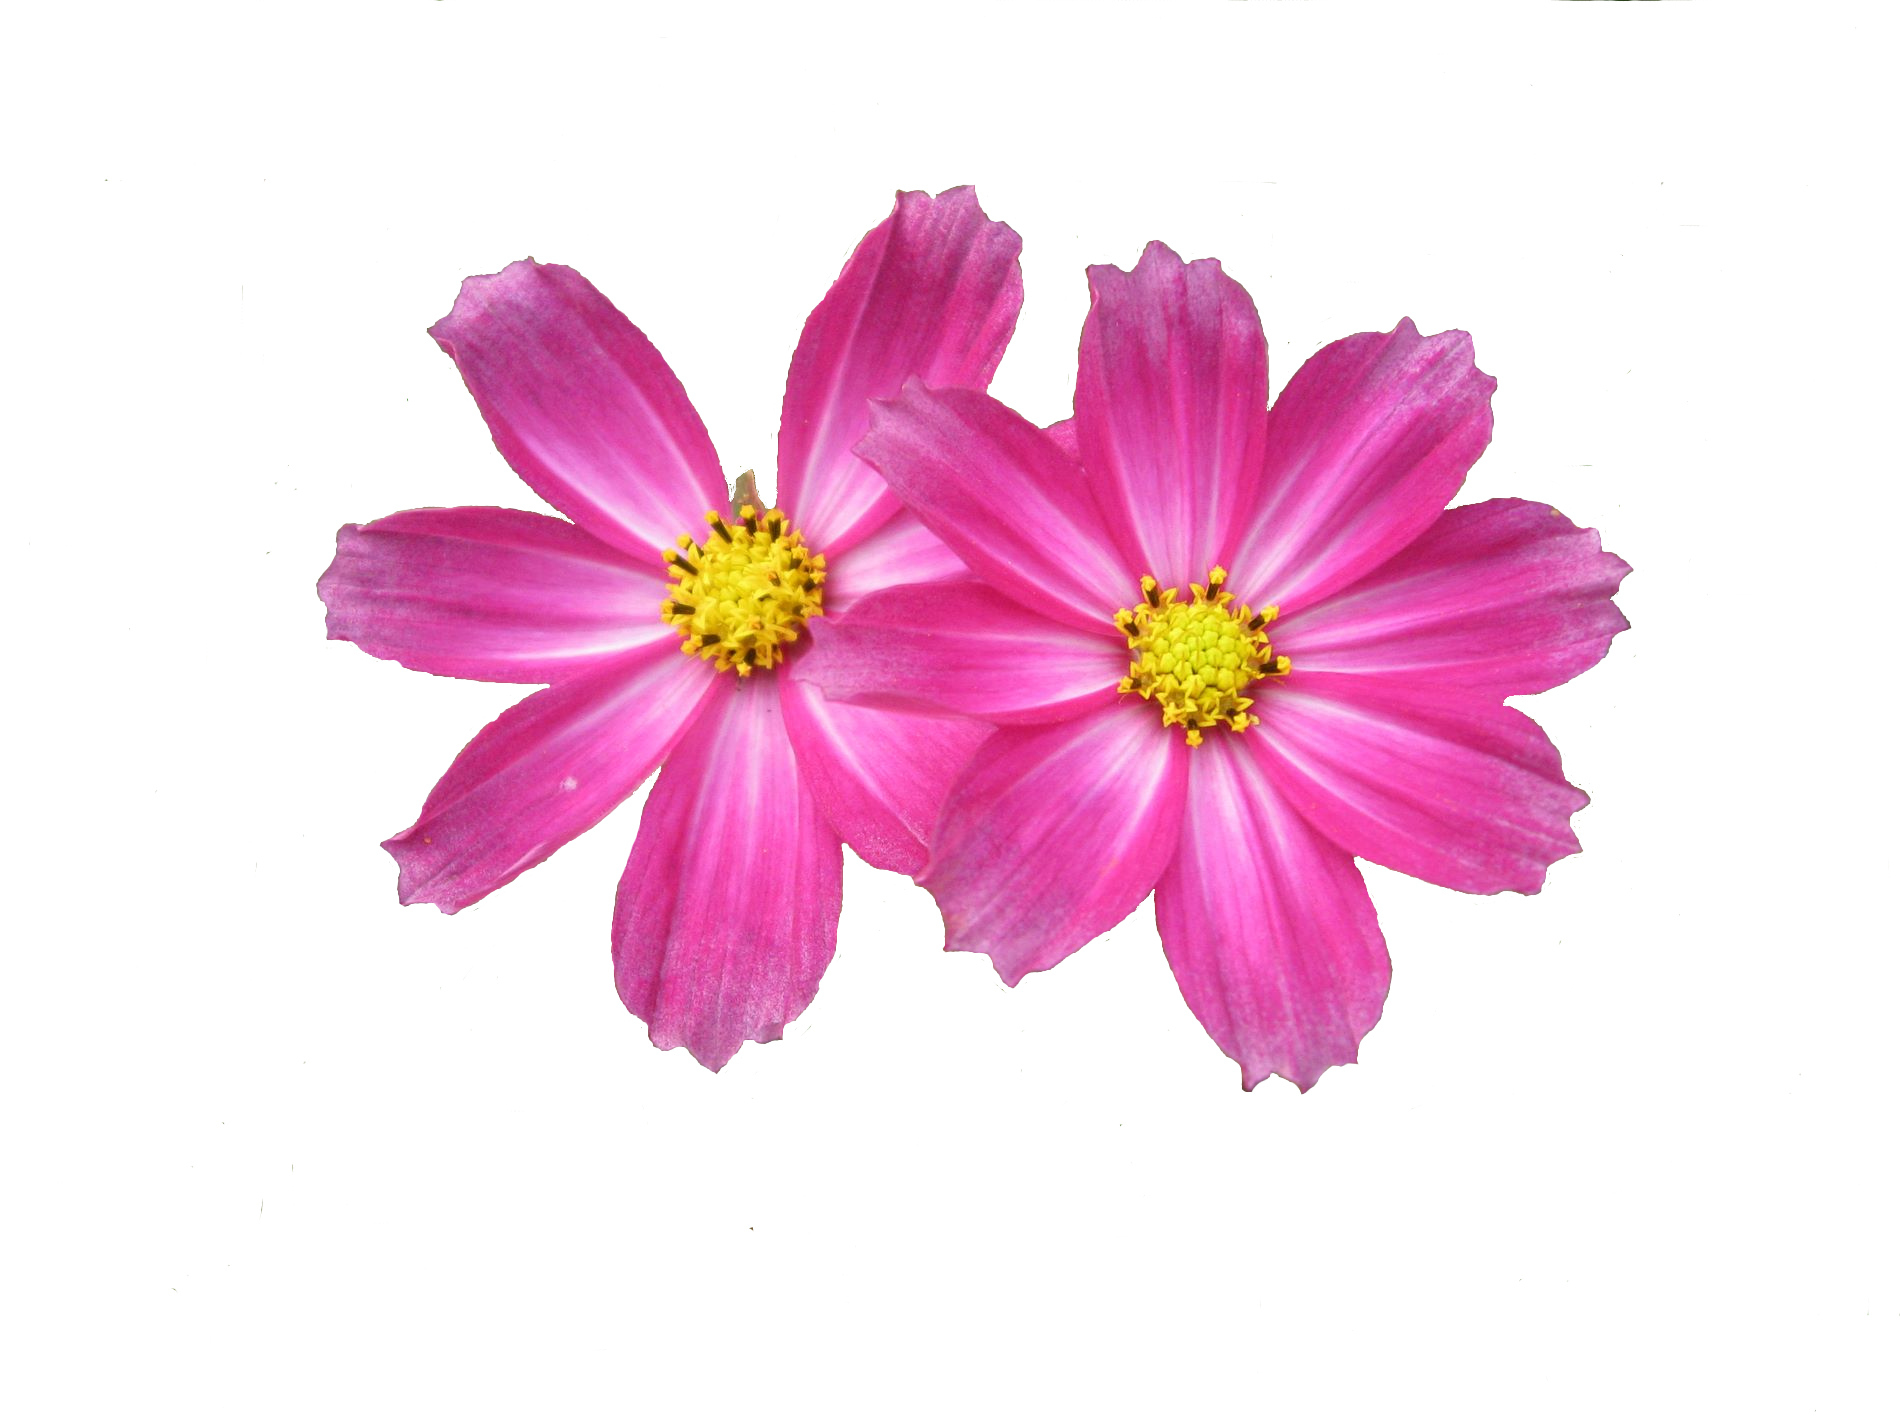 Free Download Flower Png Images #28706.